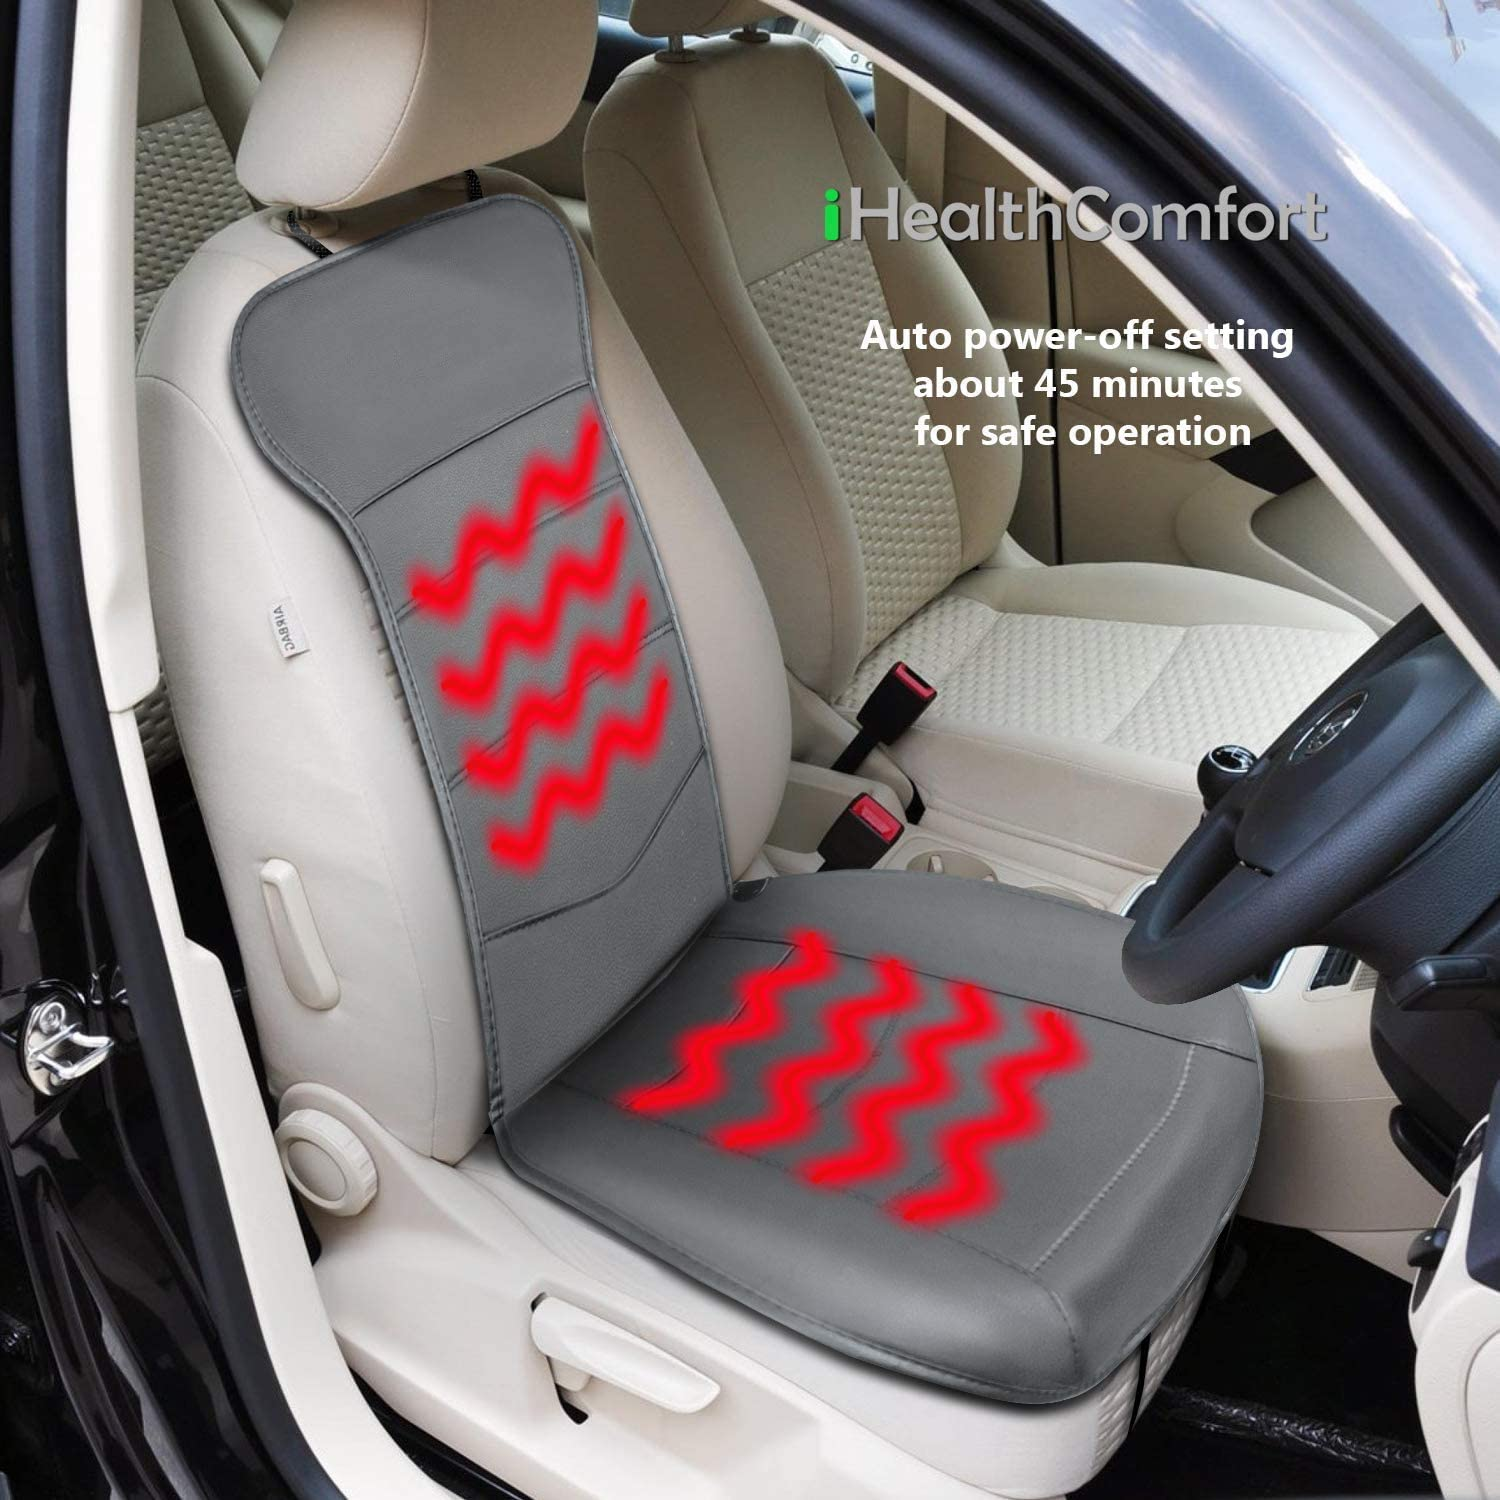 iHealthComfort Universal Car Max 77% OFF Seat Faux Breathable Cushion Very popular Cover